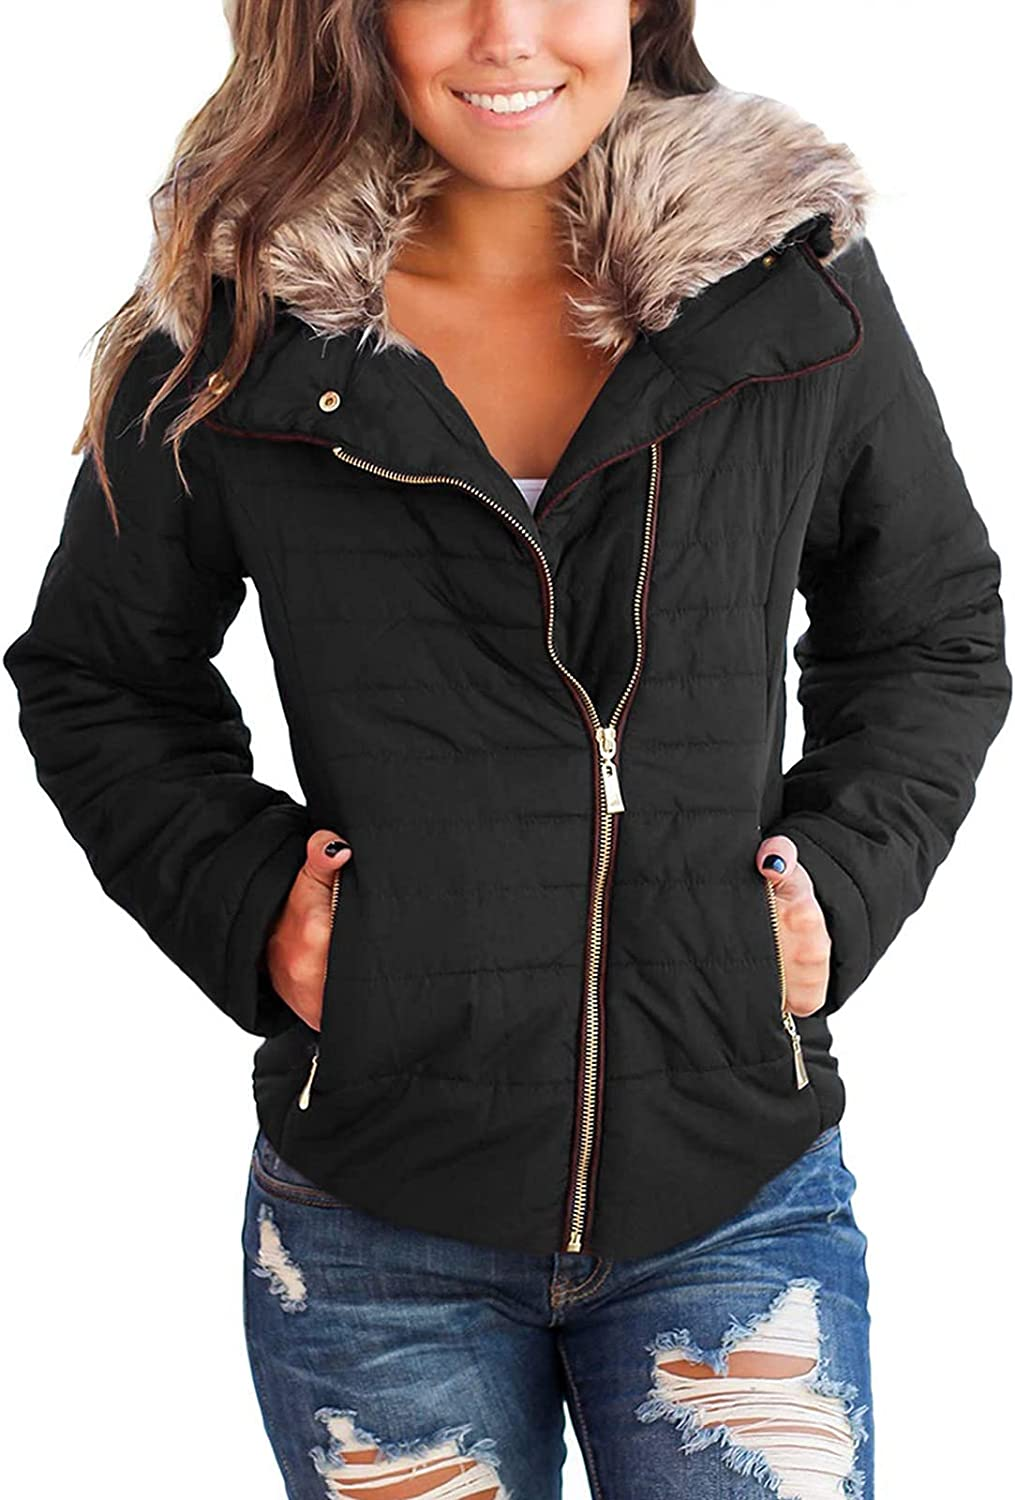 GRAPENT Challenge the lowest price Women's Casual Faux Fur Pocket Jacket SEAL limited product Quilted Lapel Zip